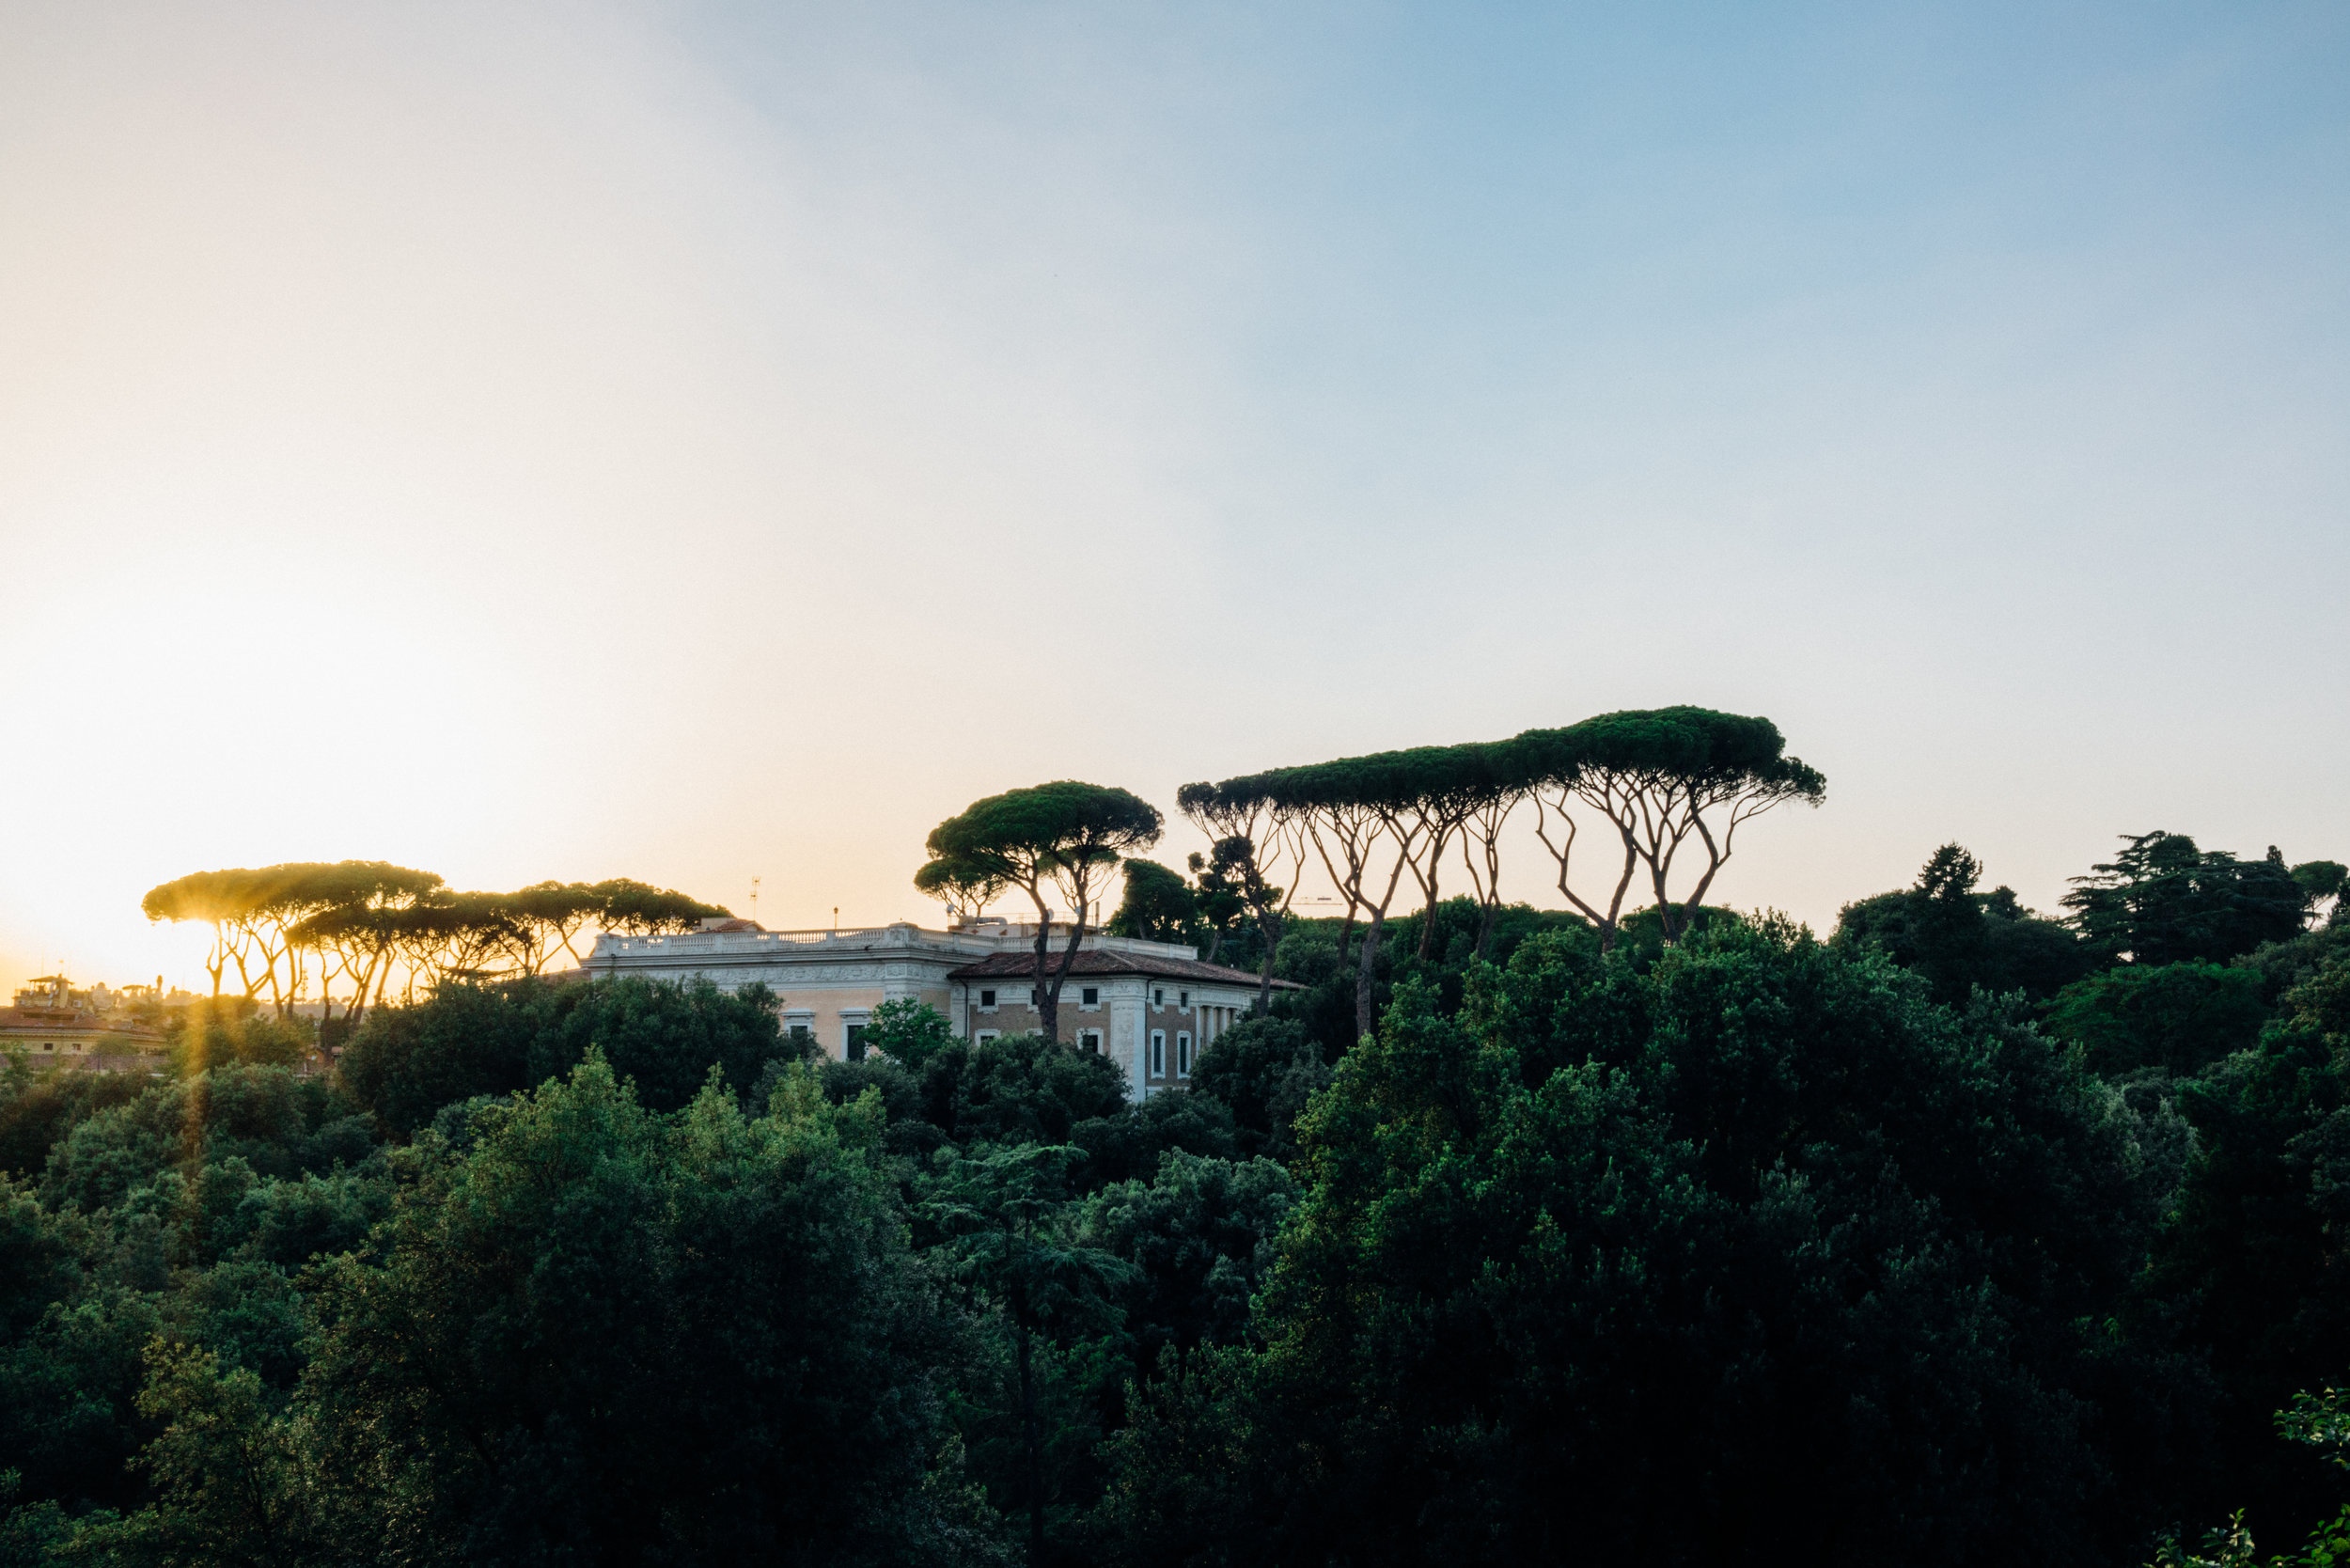 Watching the sun set from Villa Borghese